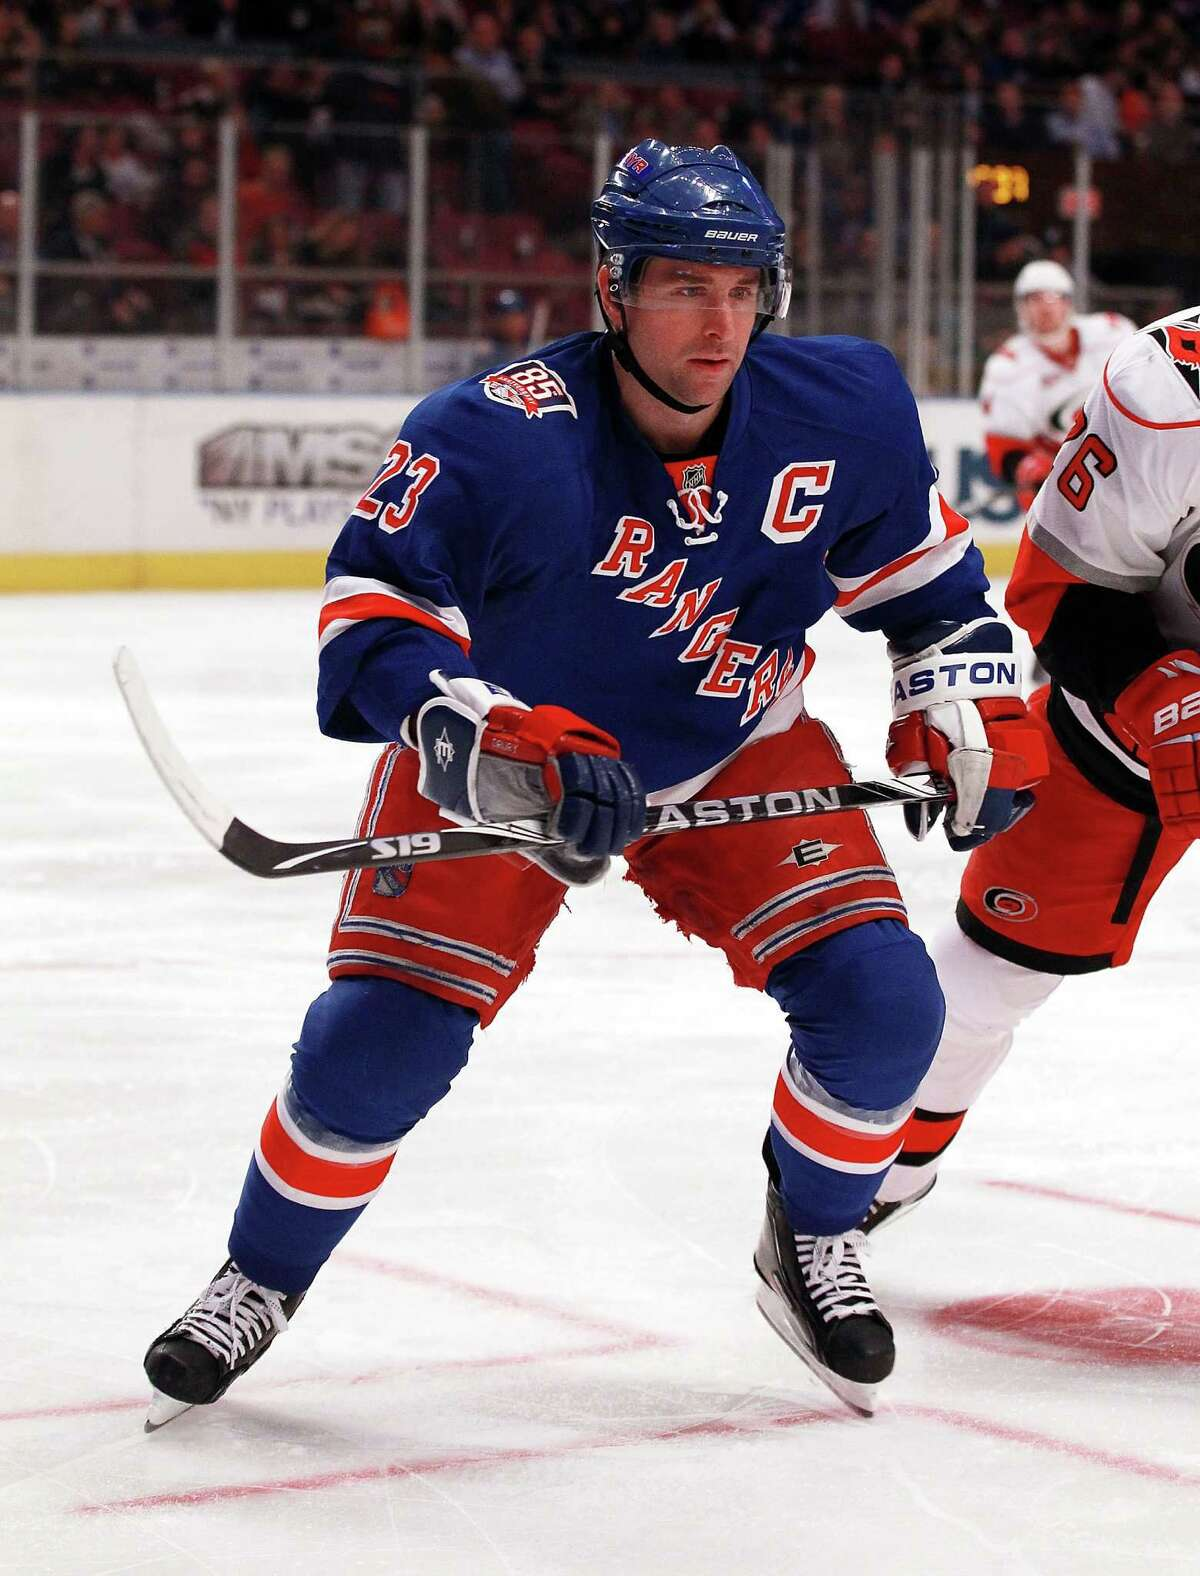 Chris Drury (23) of the New York Rangers skates against the Carolina Hurricanes at Madison Square Garden on January 5, 2011 in New York City. The Rangers defeated the Hurricanes 2-1 in overtime. The Rangers named Drury their new assistant general manager on Friday, September 2, 2016.